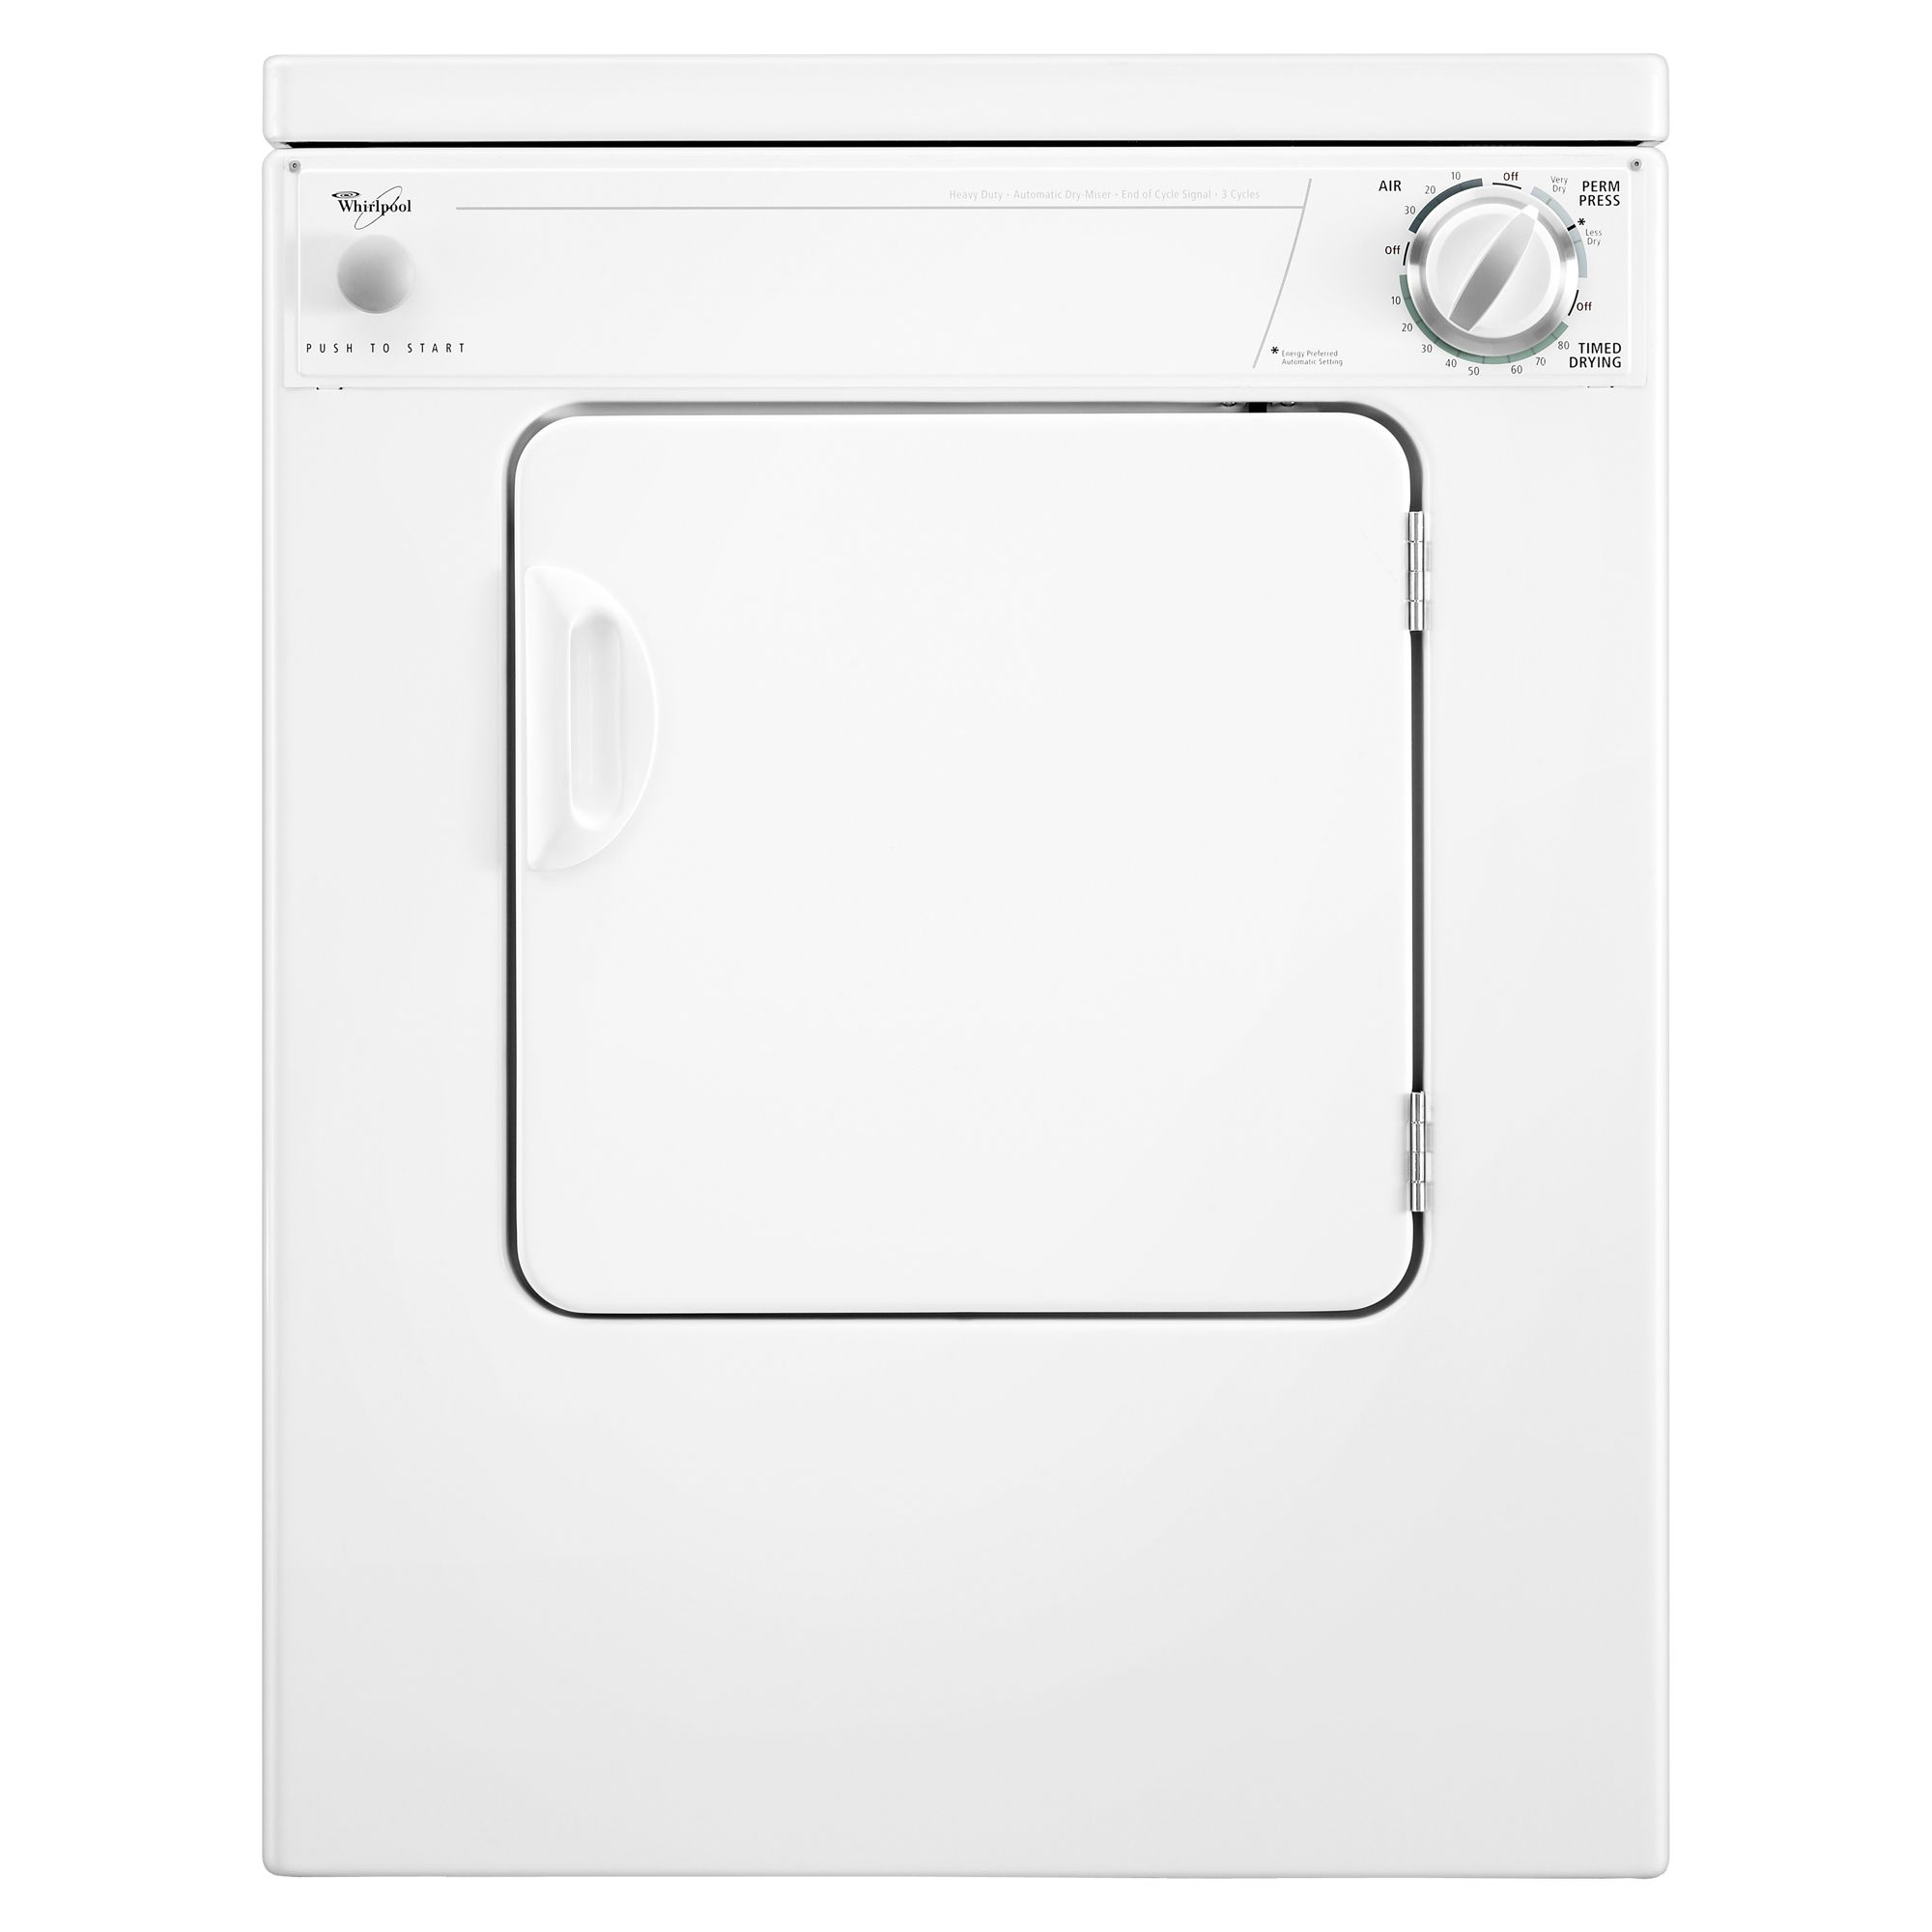 3.4 cu. ft. Electric Dryer - White